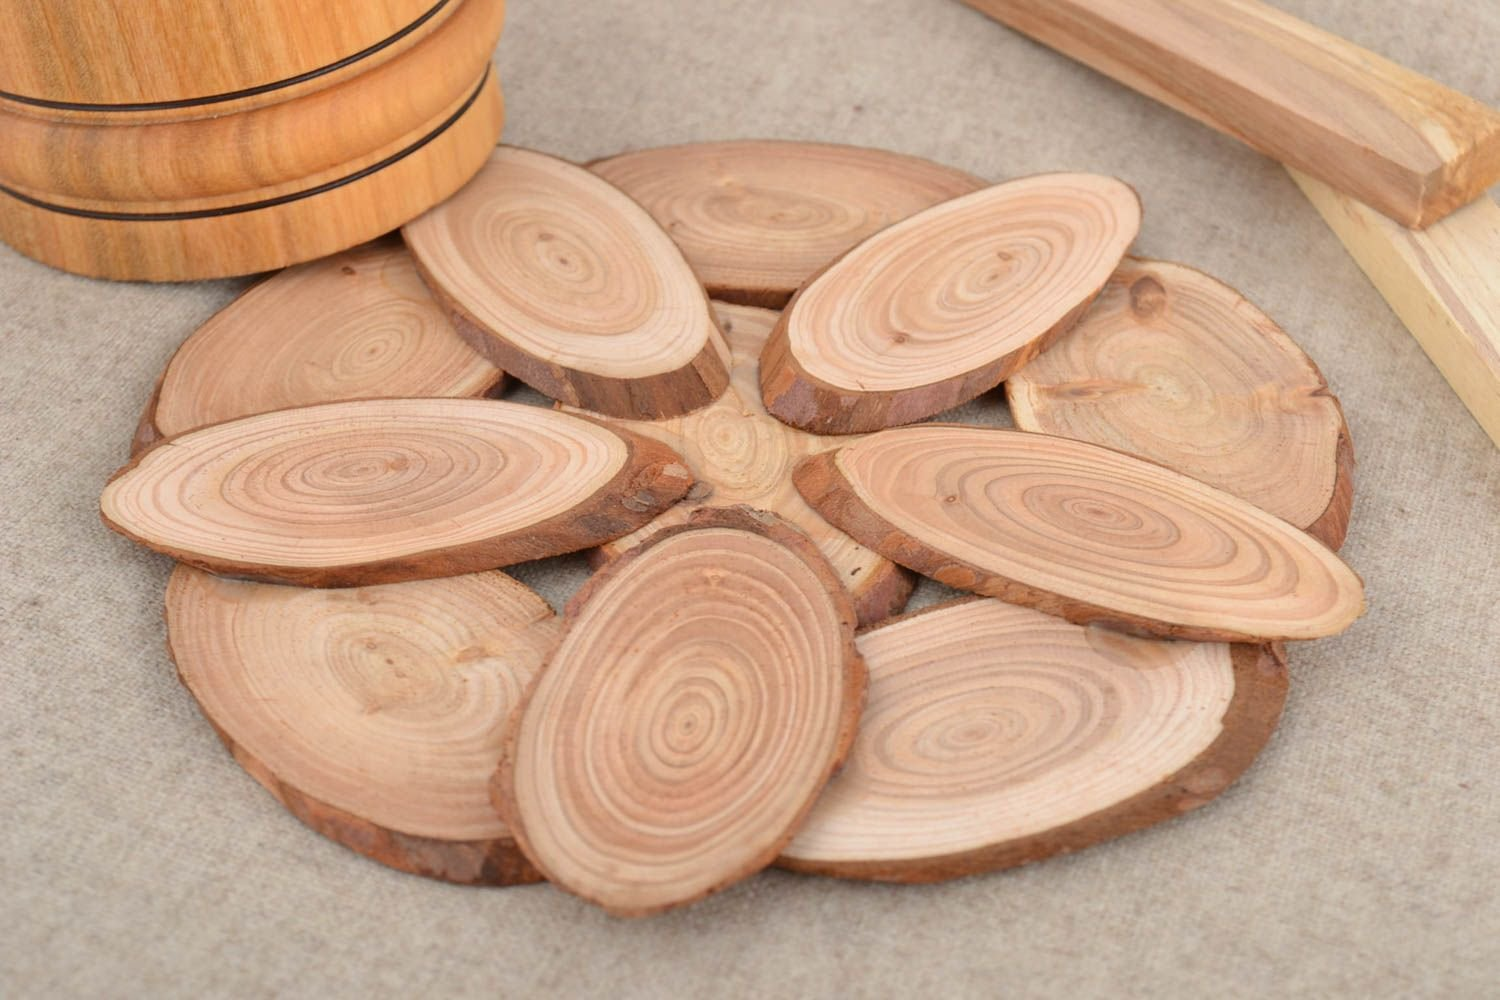 Standard Natural Holders for Pots and Pans Round Coasters Relaxdays Cork Trivet Set of 4 Heatproof